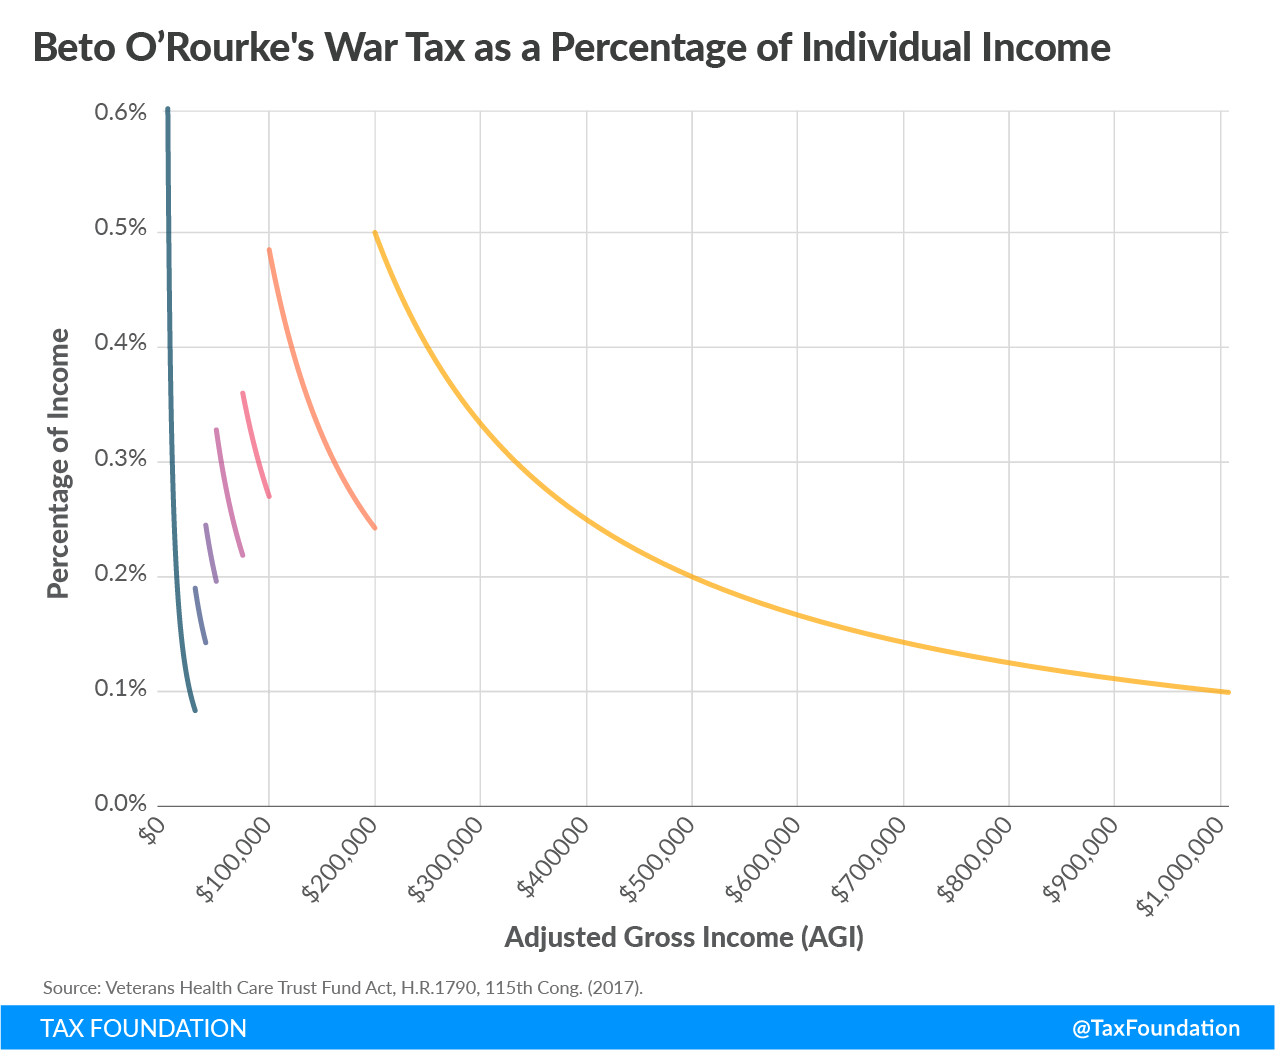 Beto O'Rourke War Tax Beto tax Beto war tax